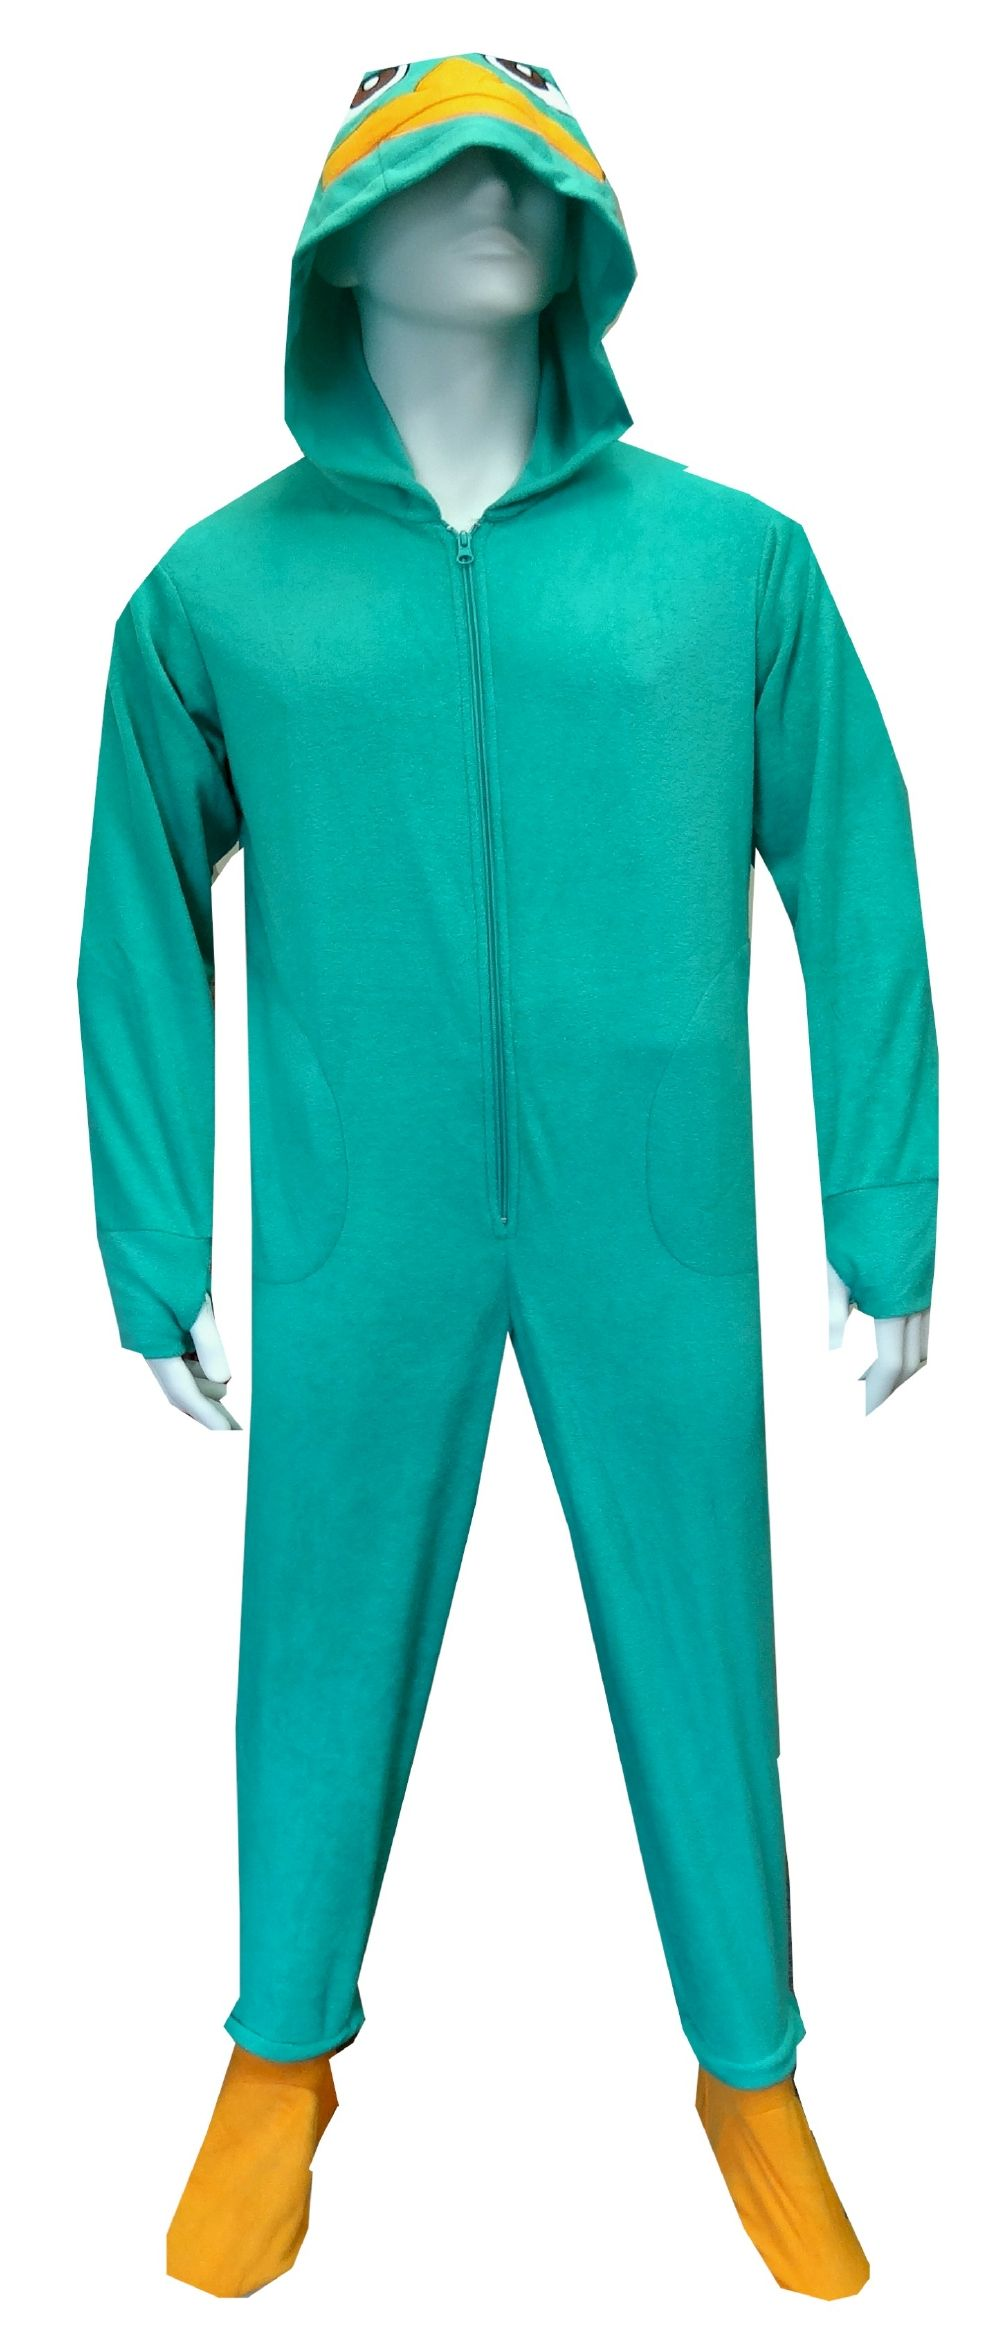 5c1b7e95ee8f Phineas And Ferb Perry The Platypus Footie Pajamas with Hood for adults.  Yeah